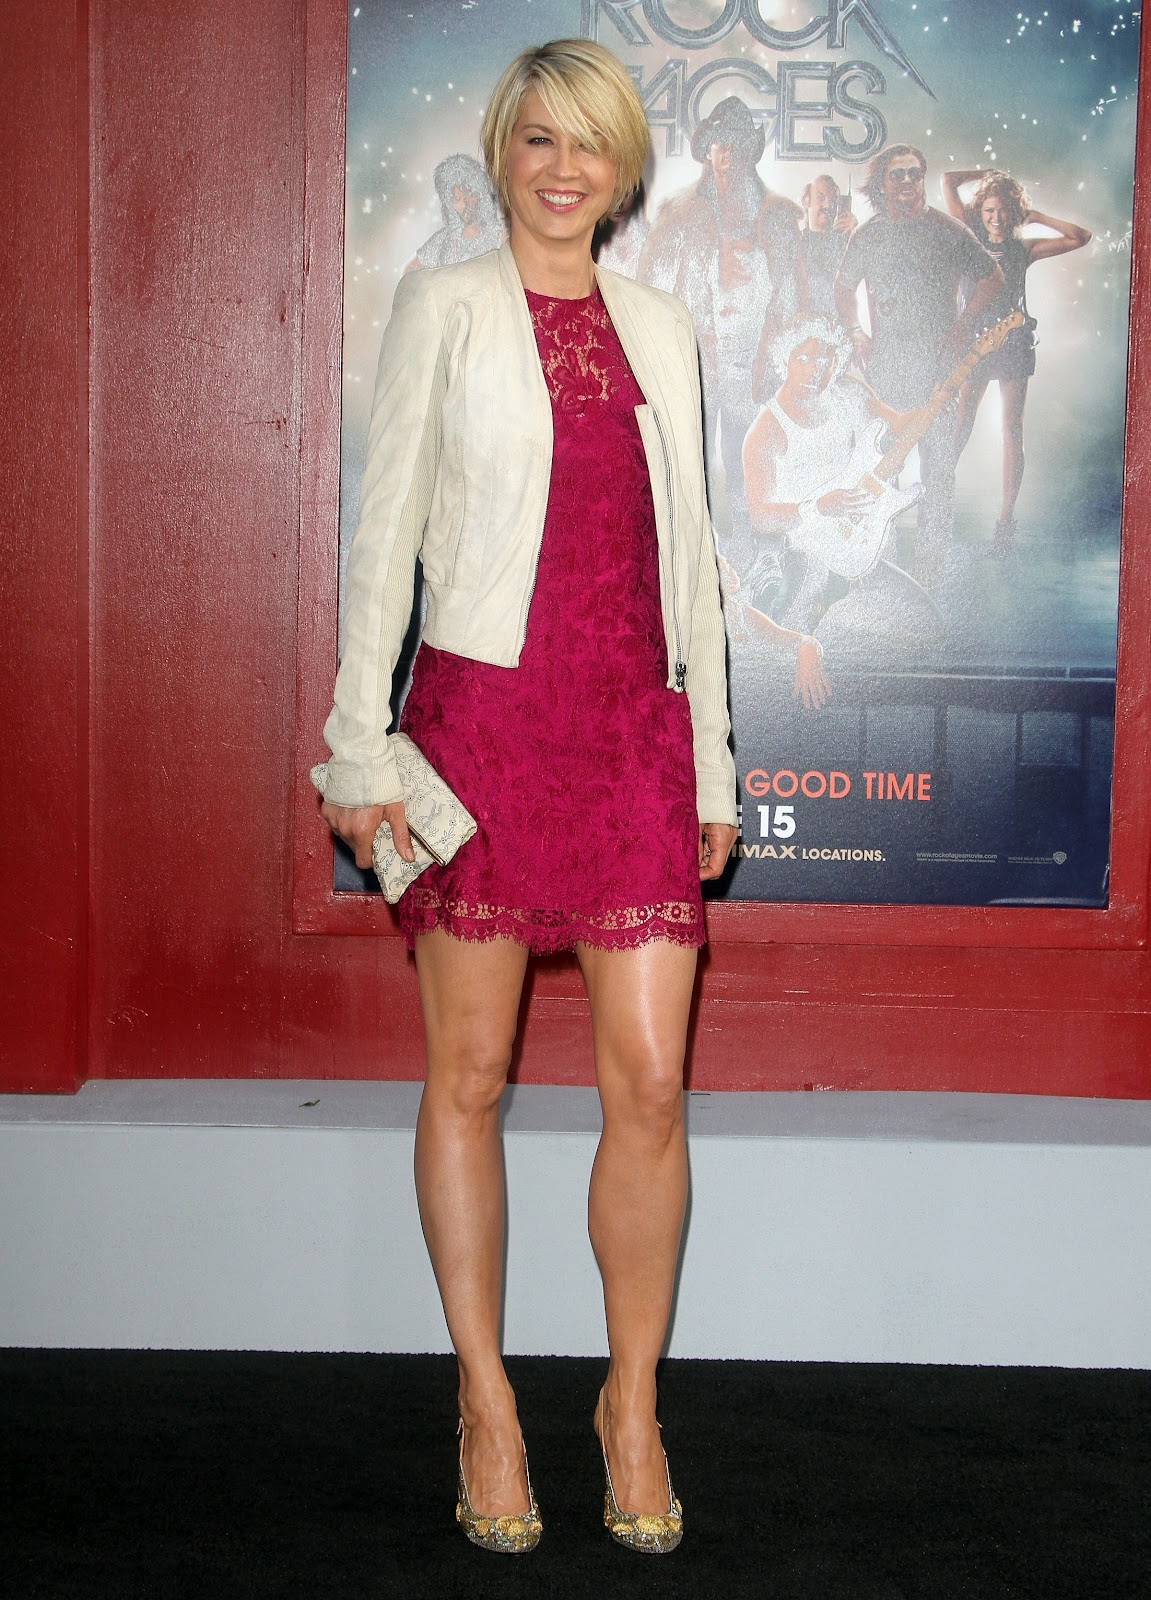 Jenna Elfman Poses For Photographers At Rock Of Ages Premiere